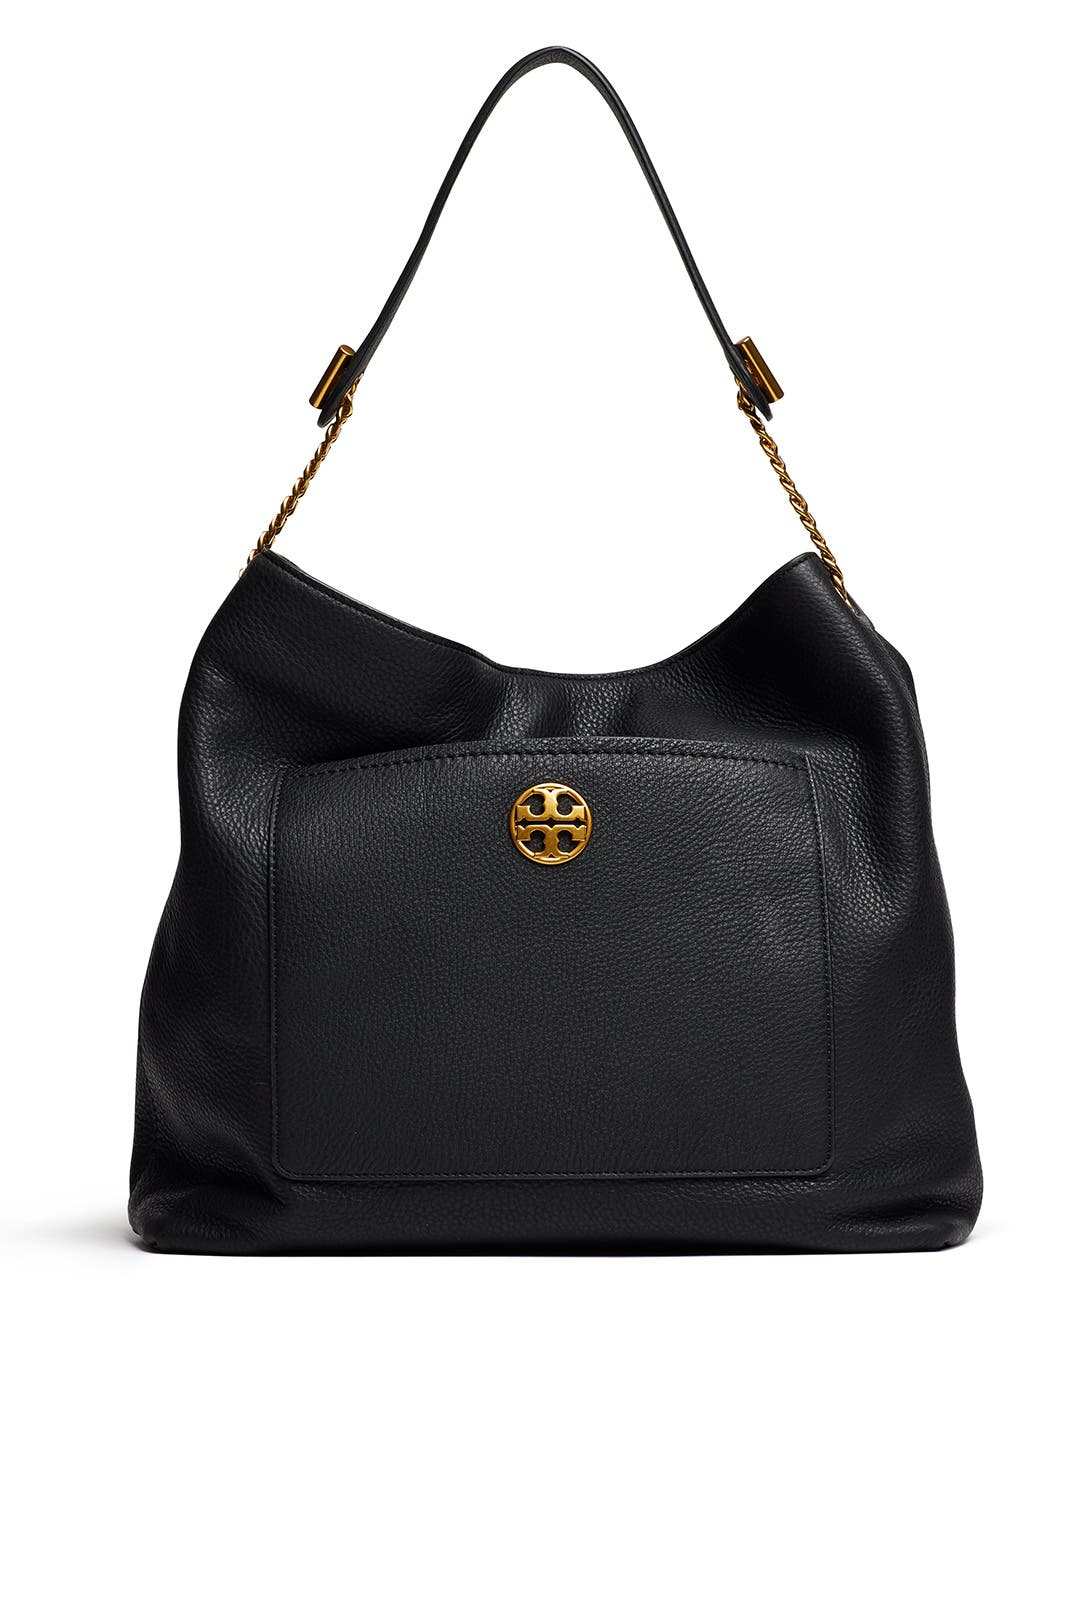 Black Chelsea Chain Hobo by Tory Burch Accessories for $85 | Rent the Runway